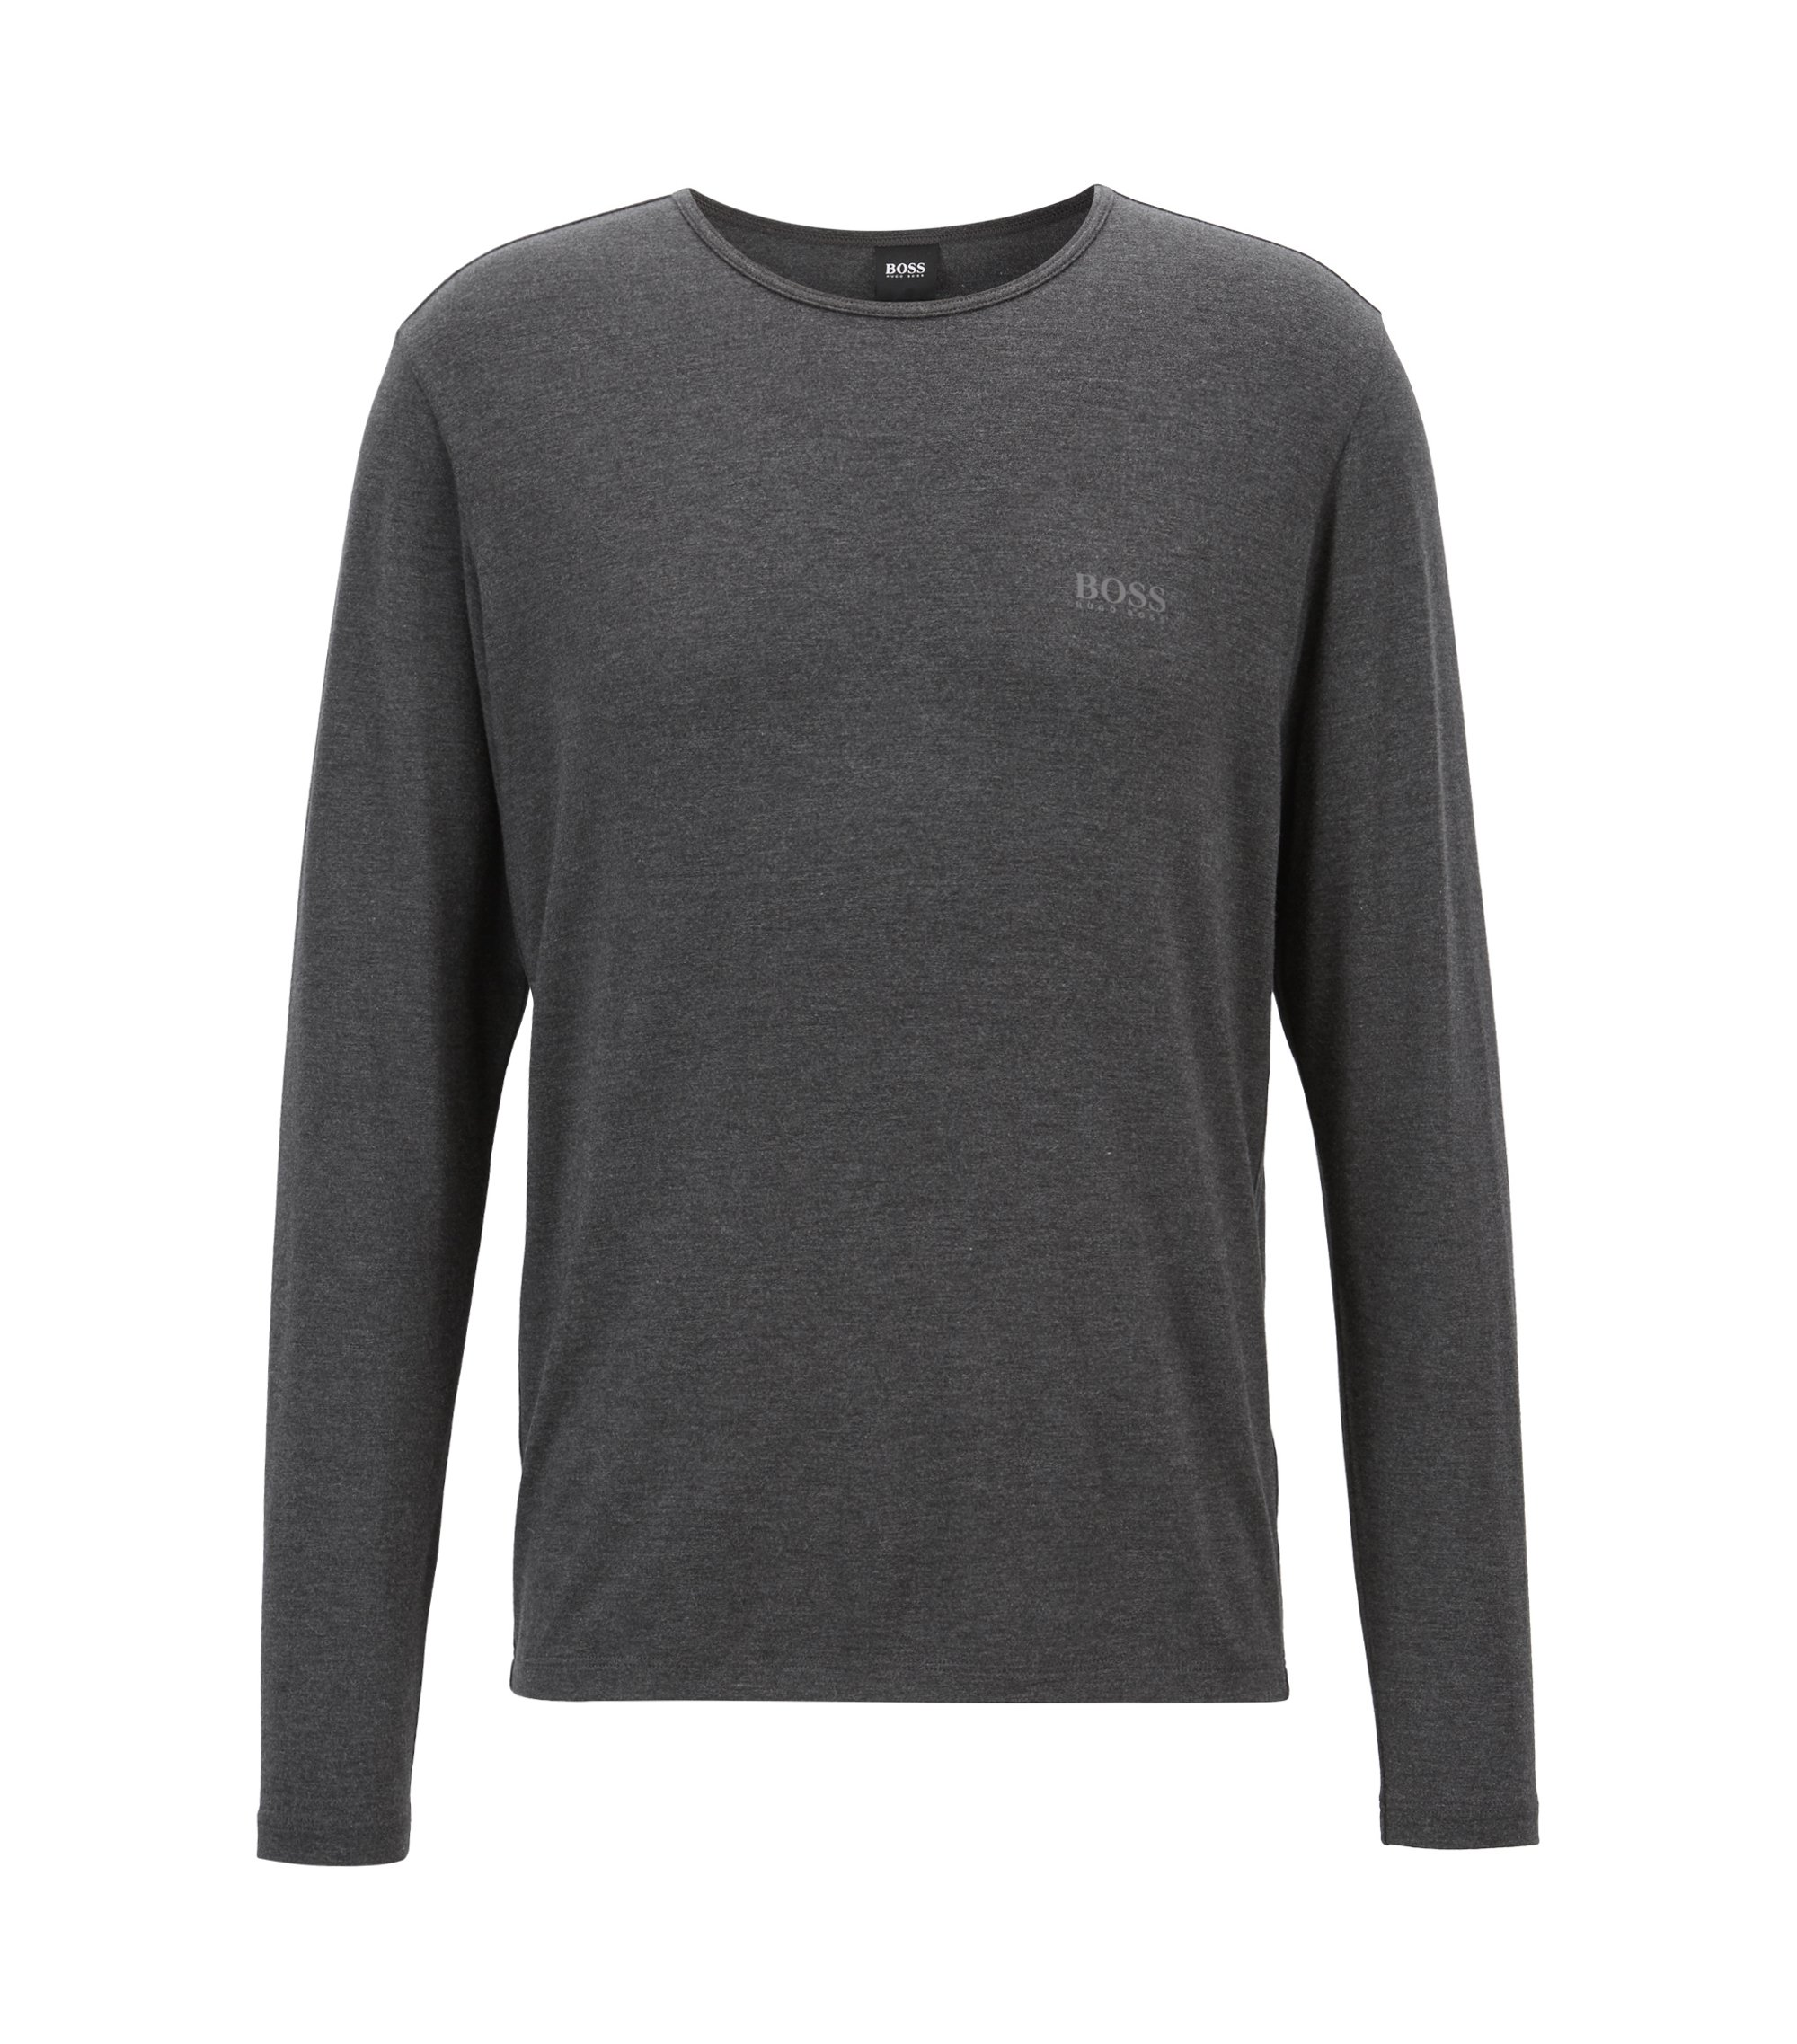 Slim-fit long-sleeved T-shirt in lightweight insulating fabric, Black